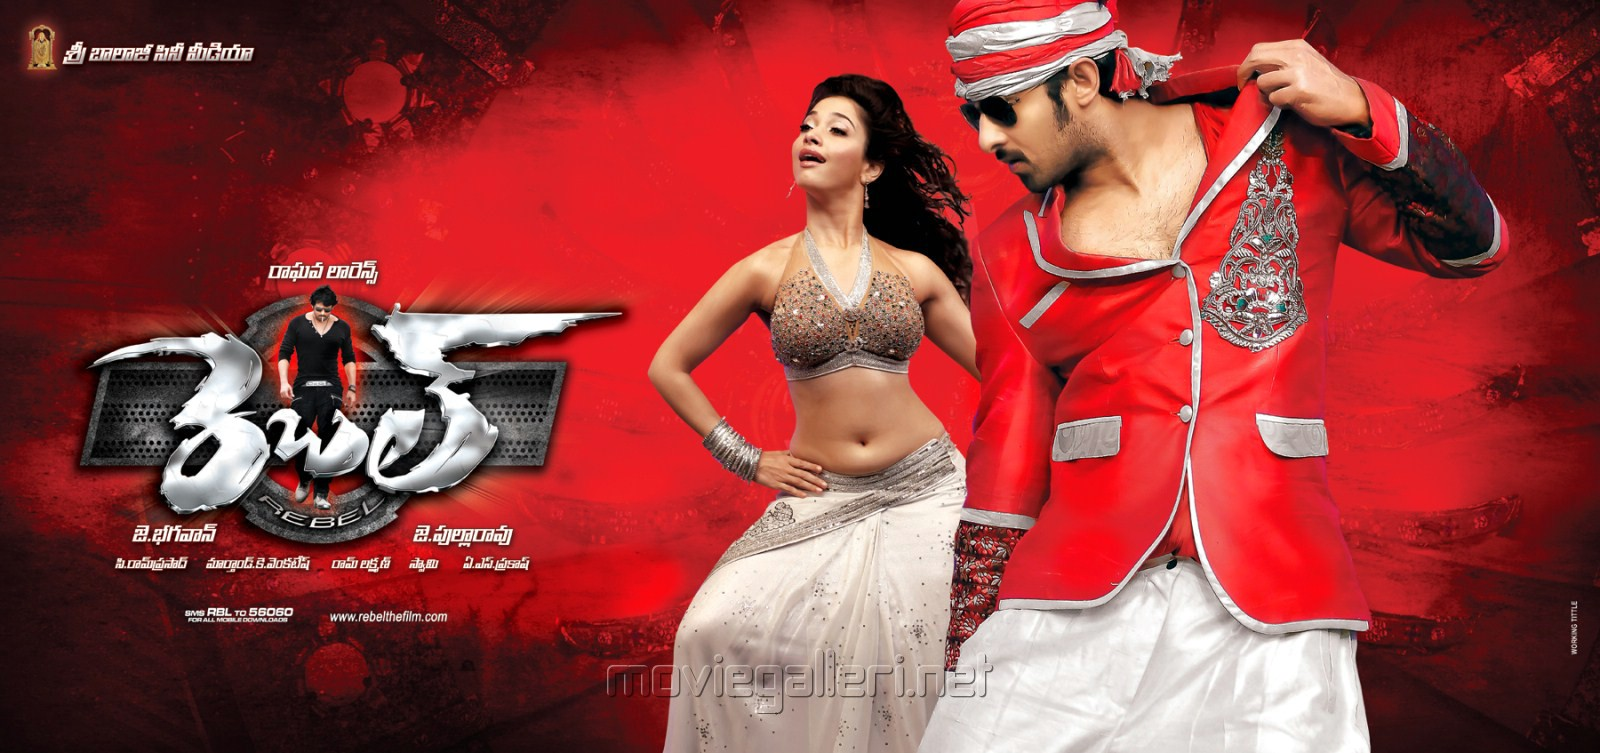 Rebel Movie New Stills: Actress Tamanna, Prabhas In Rebel Movie